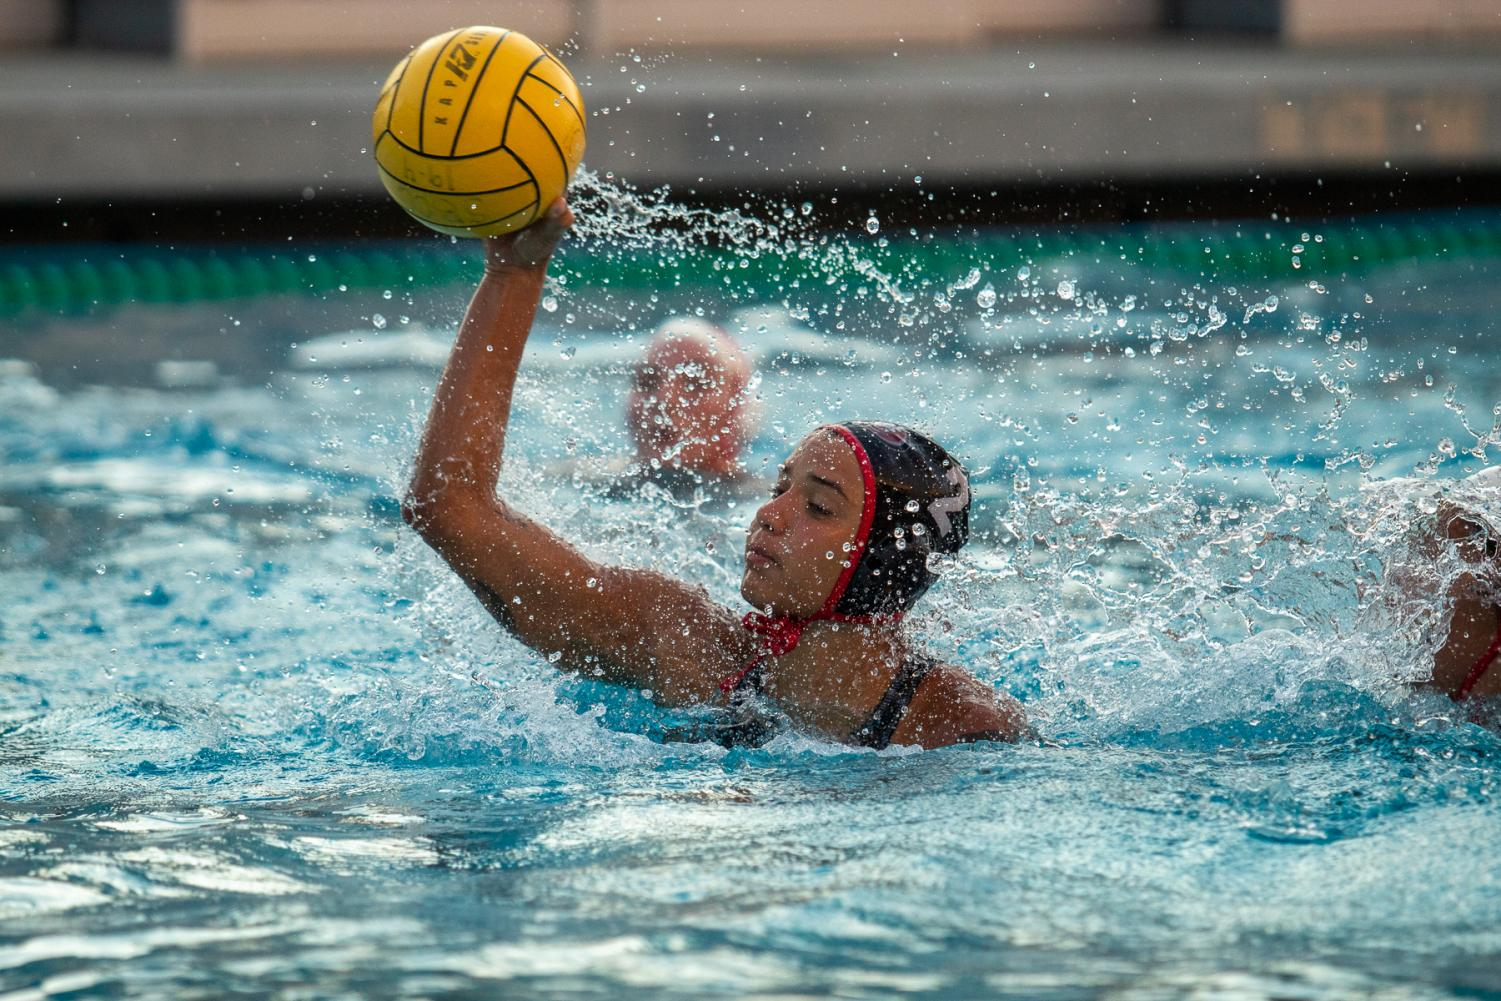 Taylor Brooks (No.2) getting a clean shot off and scoring on Friday, Nov. 1, 2019, at Santa Barbara High School in Santa Barbara, Calif. City College beat LA Pierce 17-4.